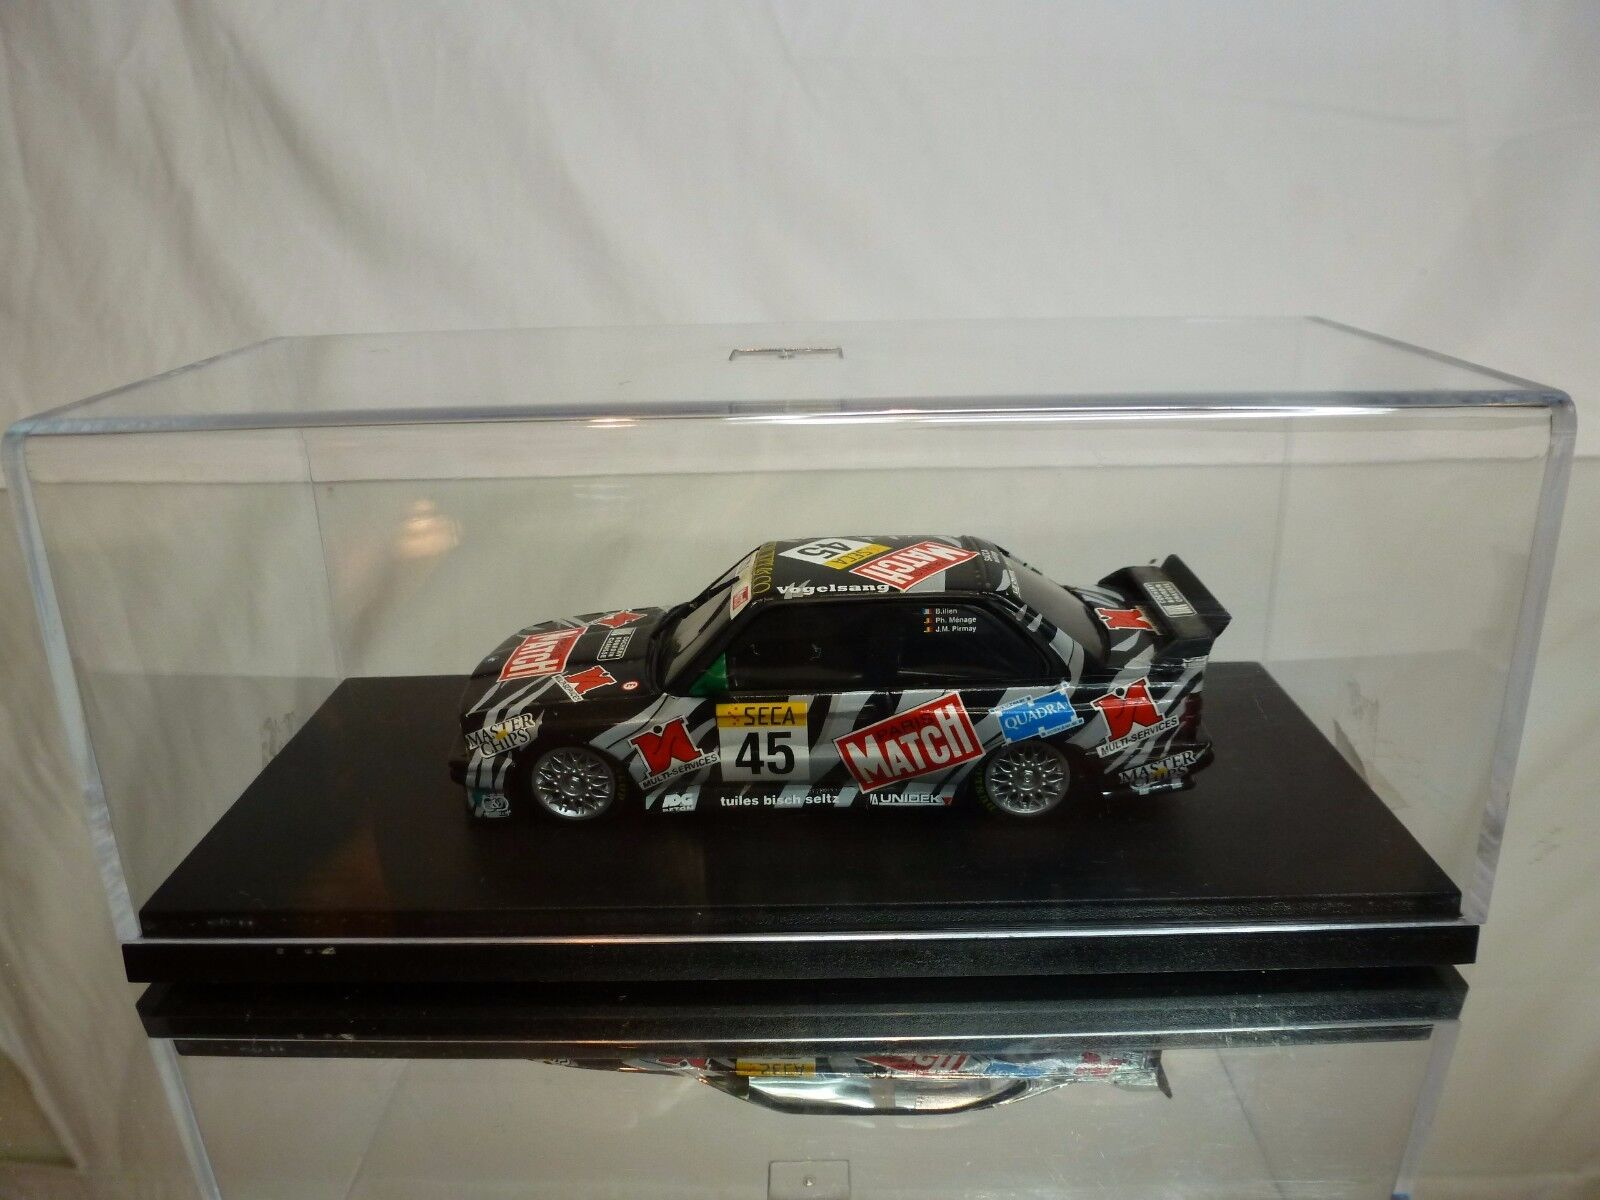 MINICHAMPS BMW M3 E30 - SECA MATCH - ILIEN MENAGE PIRMAY - 1 43 - GOOD IN BOX